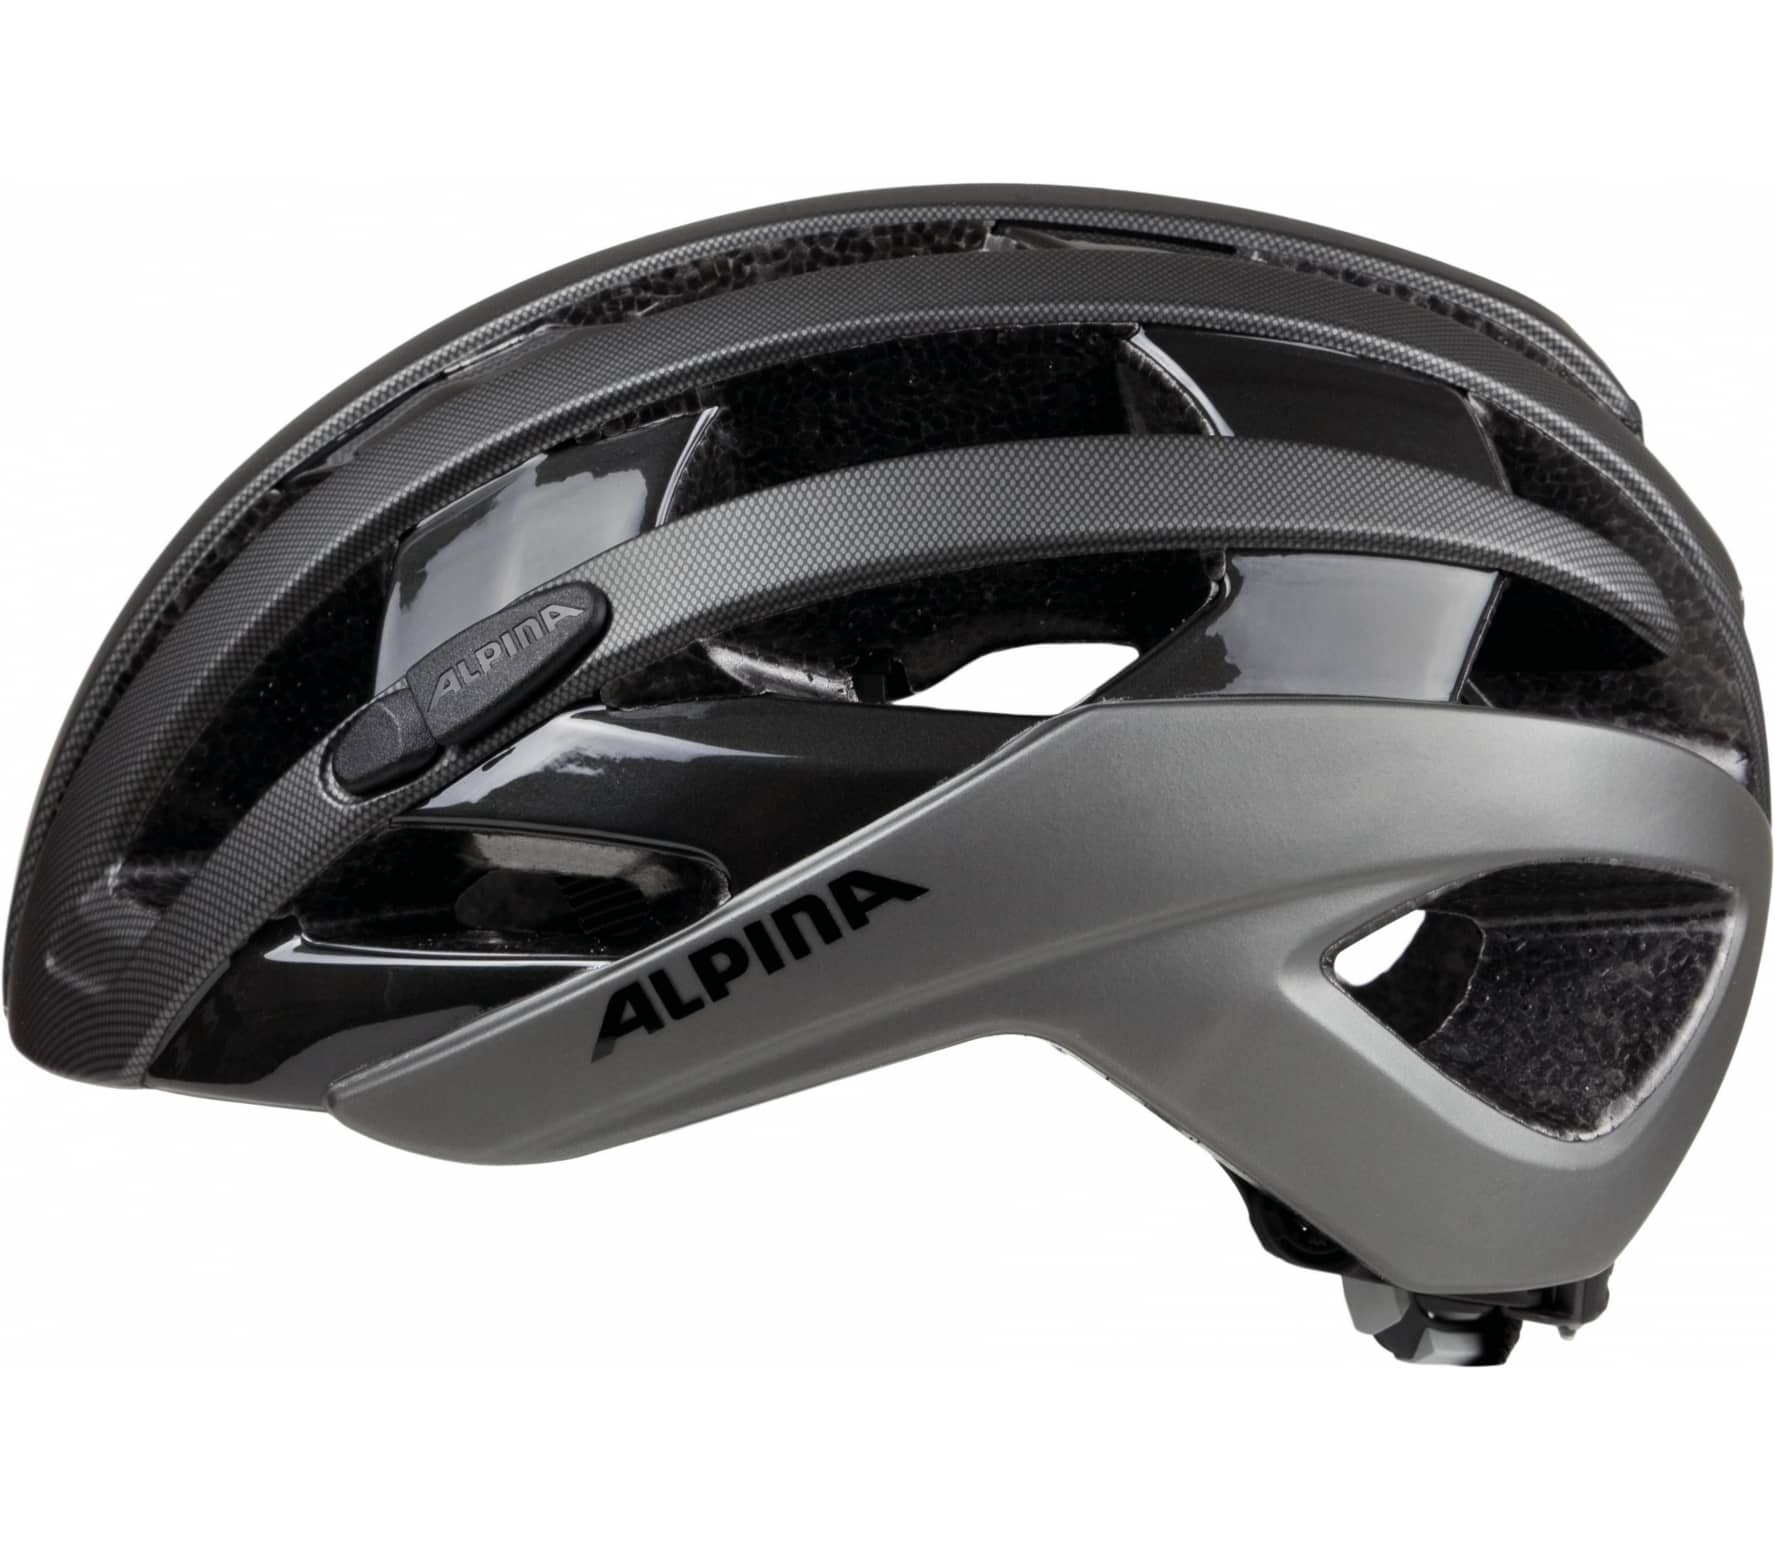 Alpina Campiglio Unisex Bicycle Helmets Black Buy It At The - Alpina helmets